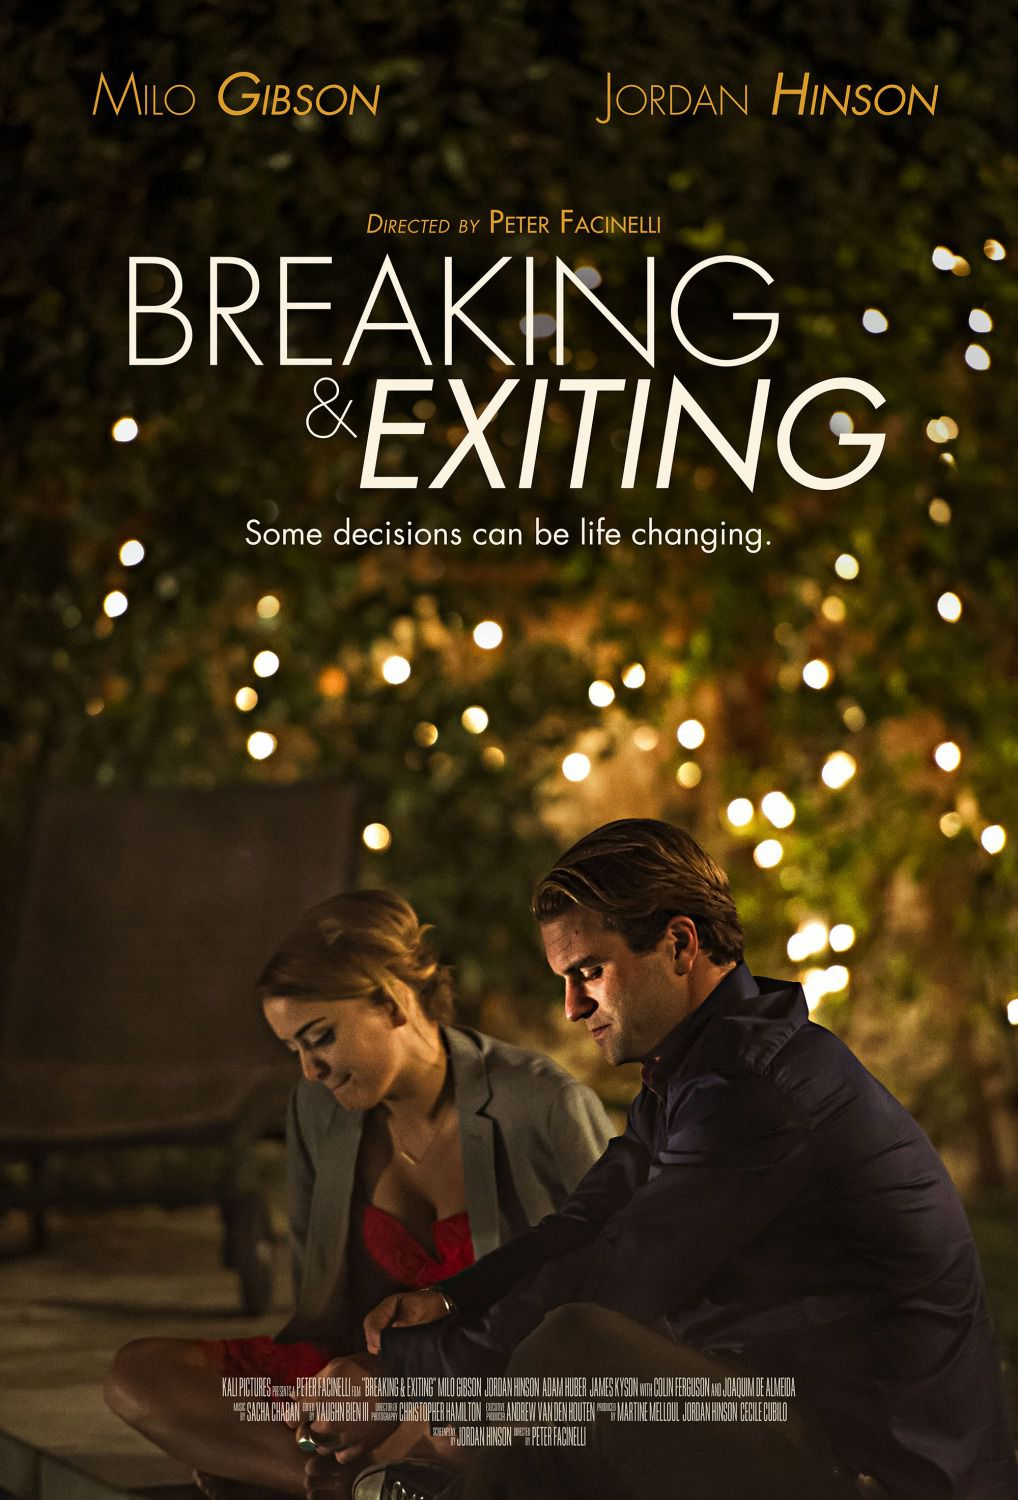 Breaking and Exiting - Some decisions can be life changing - Cast: Milo Gibson, Jordan Hinson - poster 2018